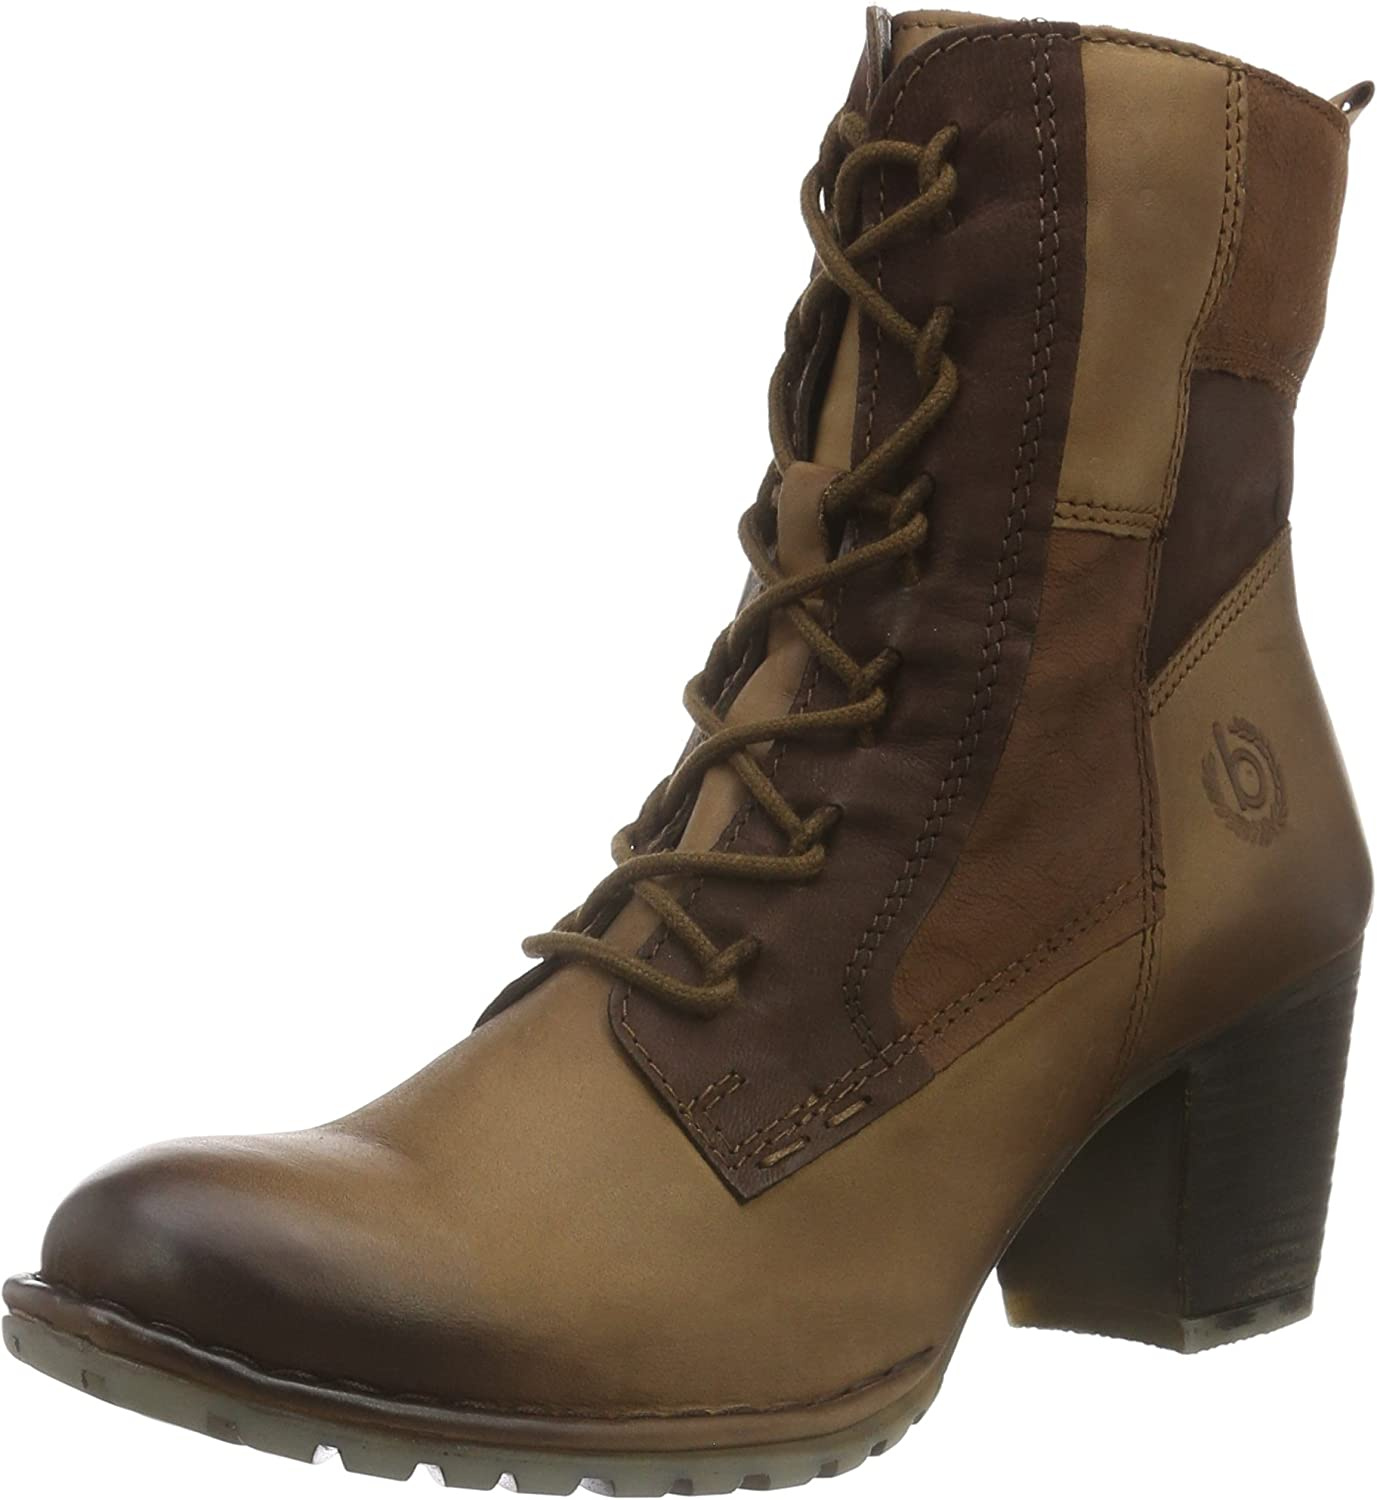 Bugatti Women Ankle Boots Brown, (brown) V52341G-600